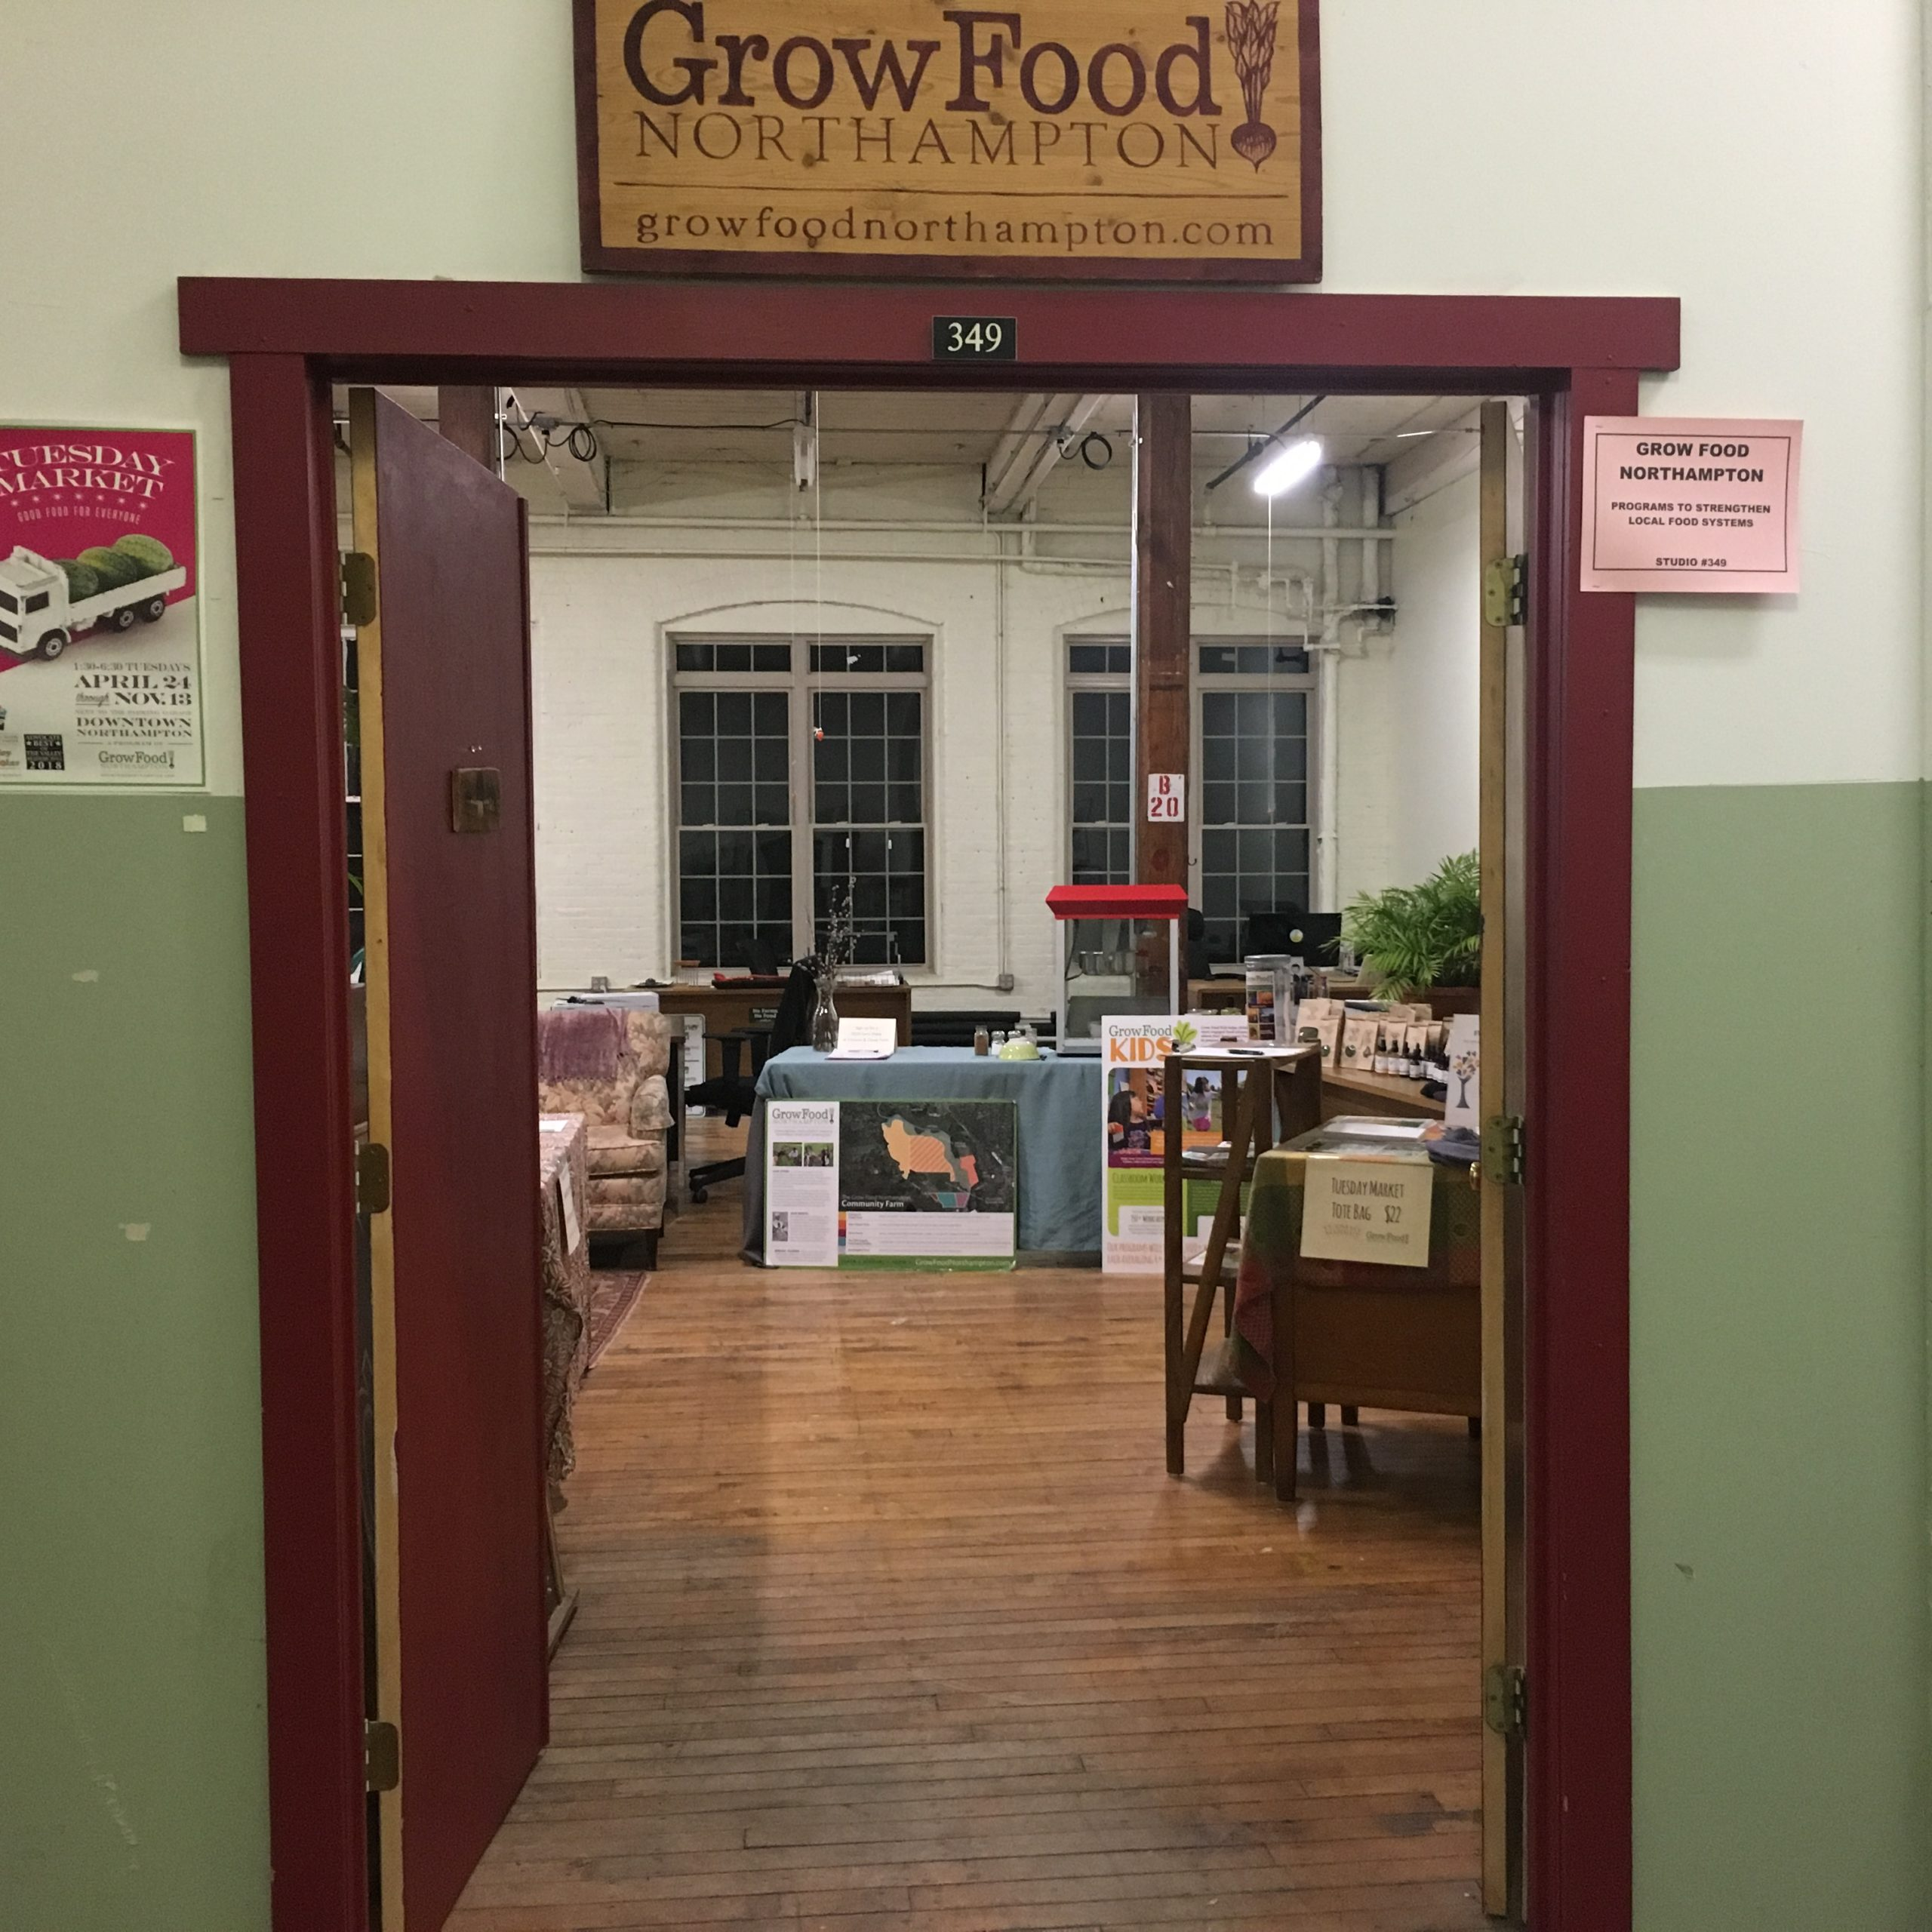 Meet And Greet Open House With Grow Food Northampton's New Executive Director, Alisa Klein